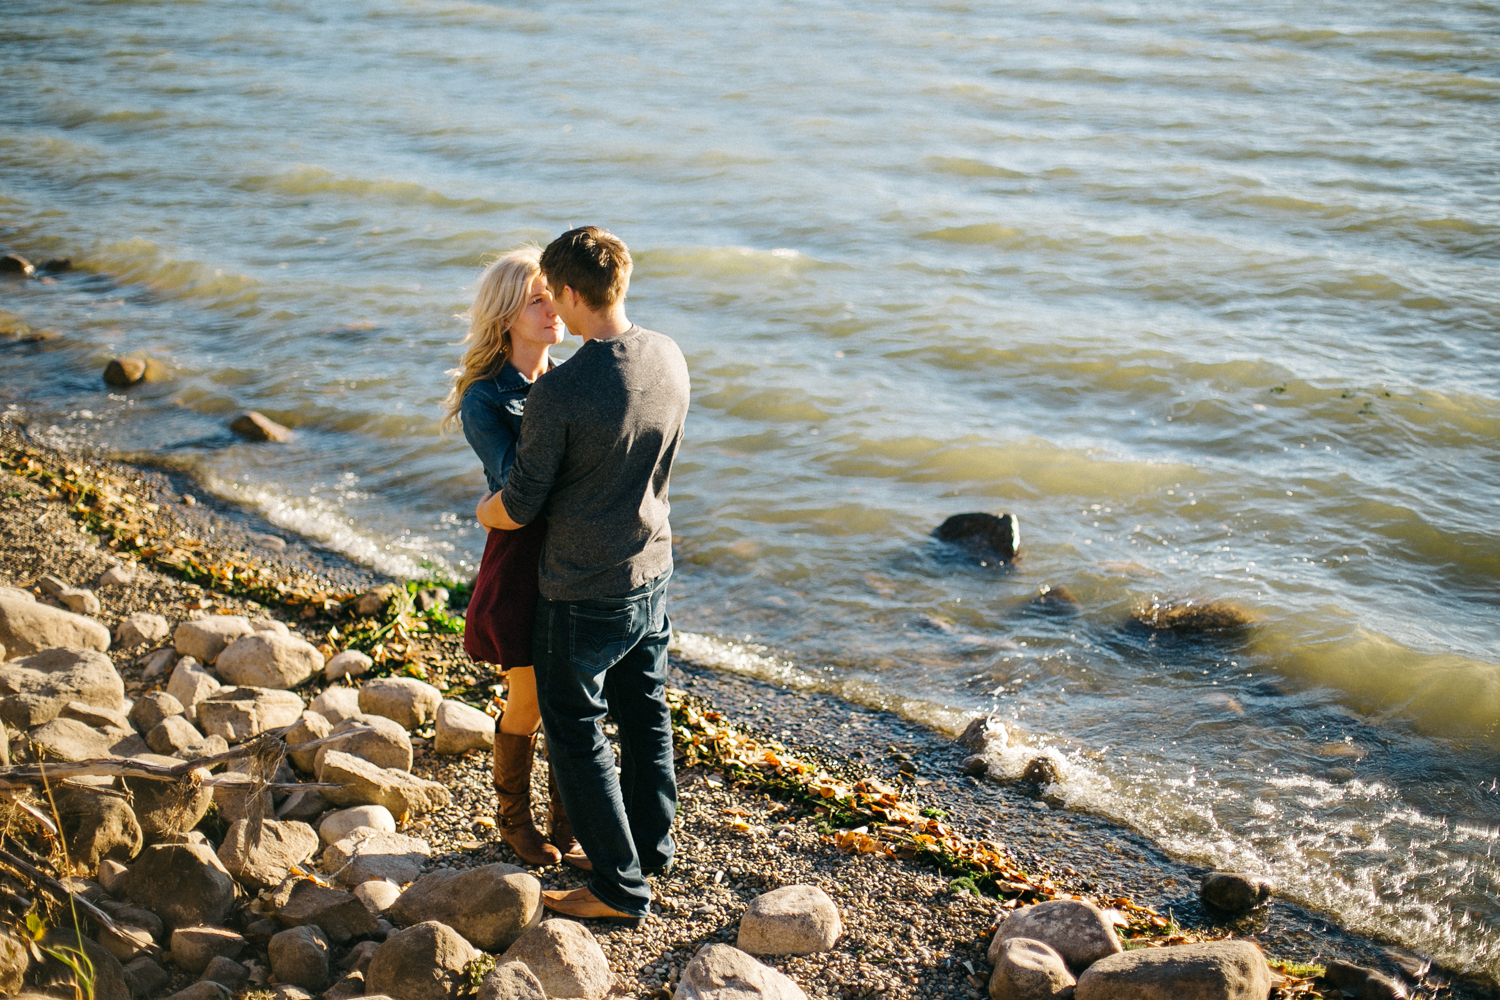 lethbridge-engagement-photography-love-and-be-loved-photography-steven-marlene-park-lake-engaged-picture-image-photo-14.jpg